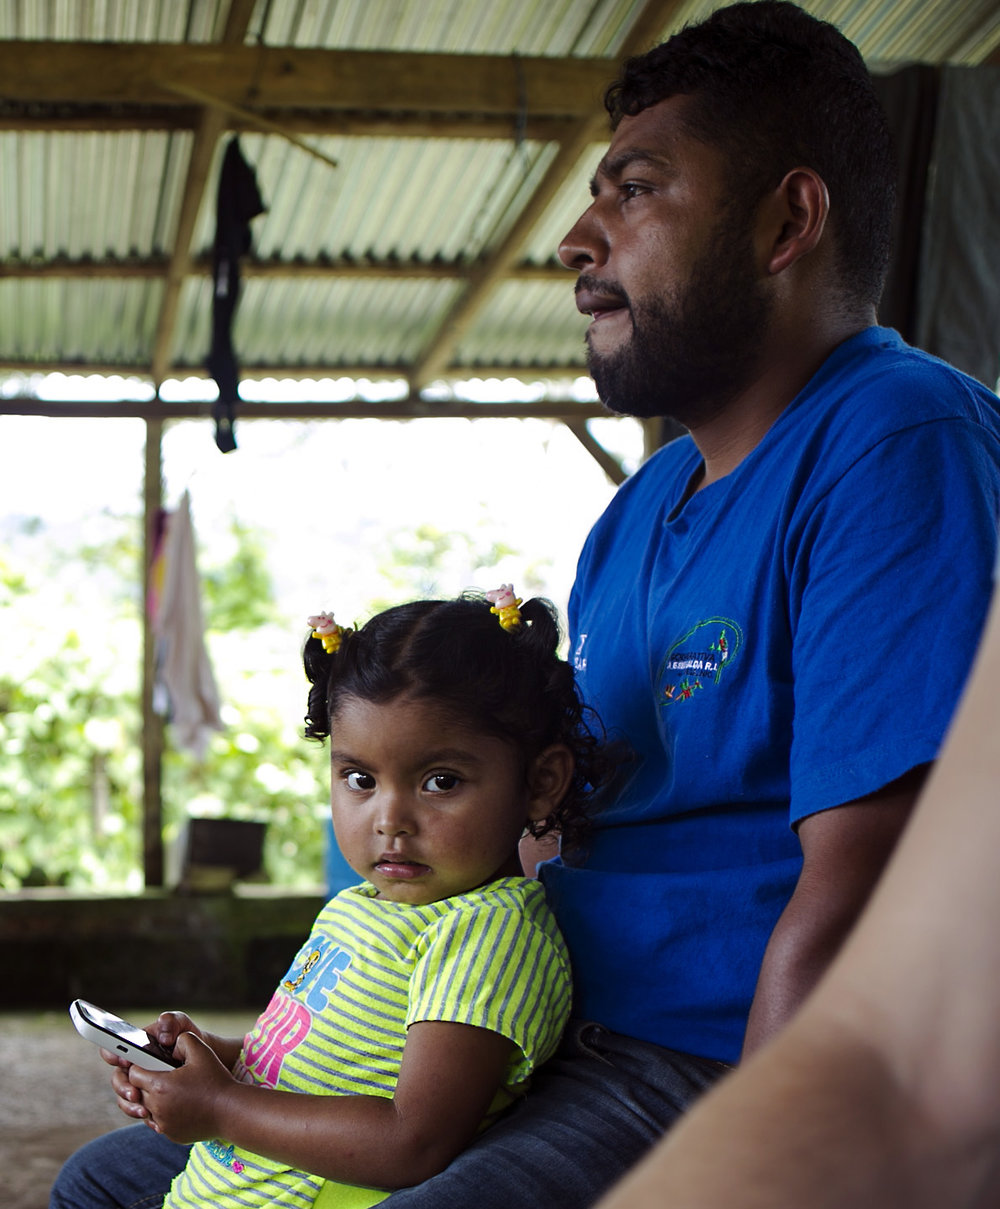 Jairo wants his daughter to receive the same educational opportunities he had.